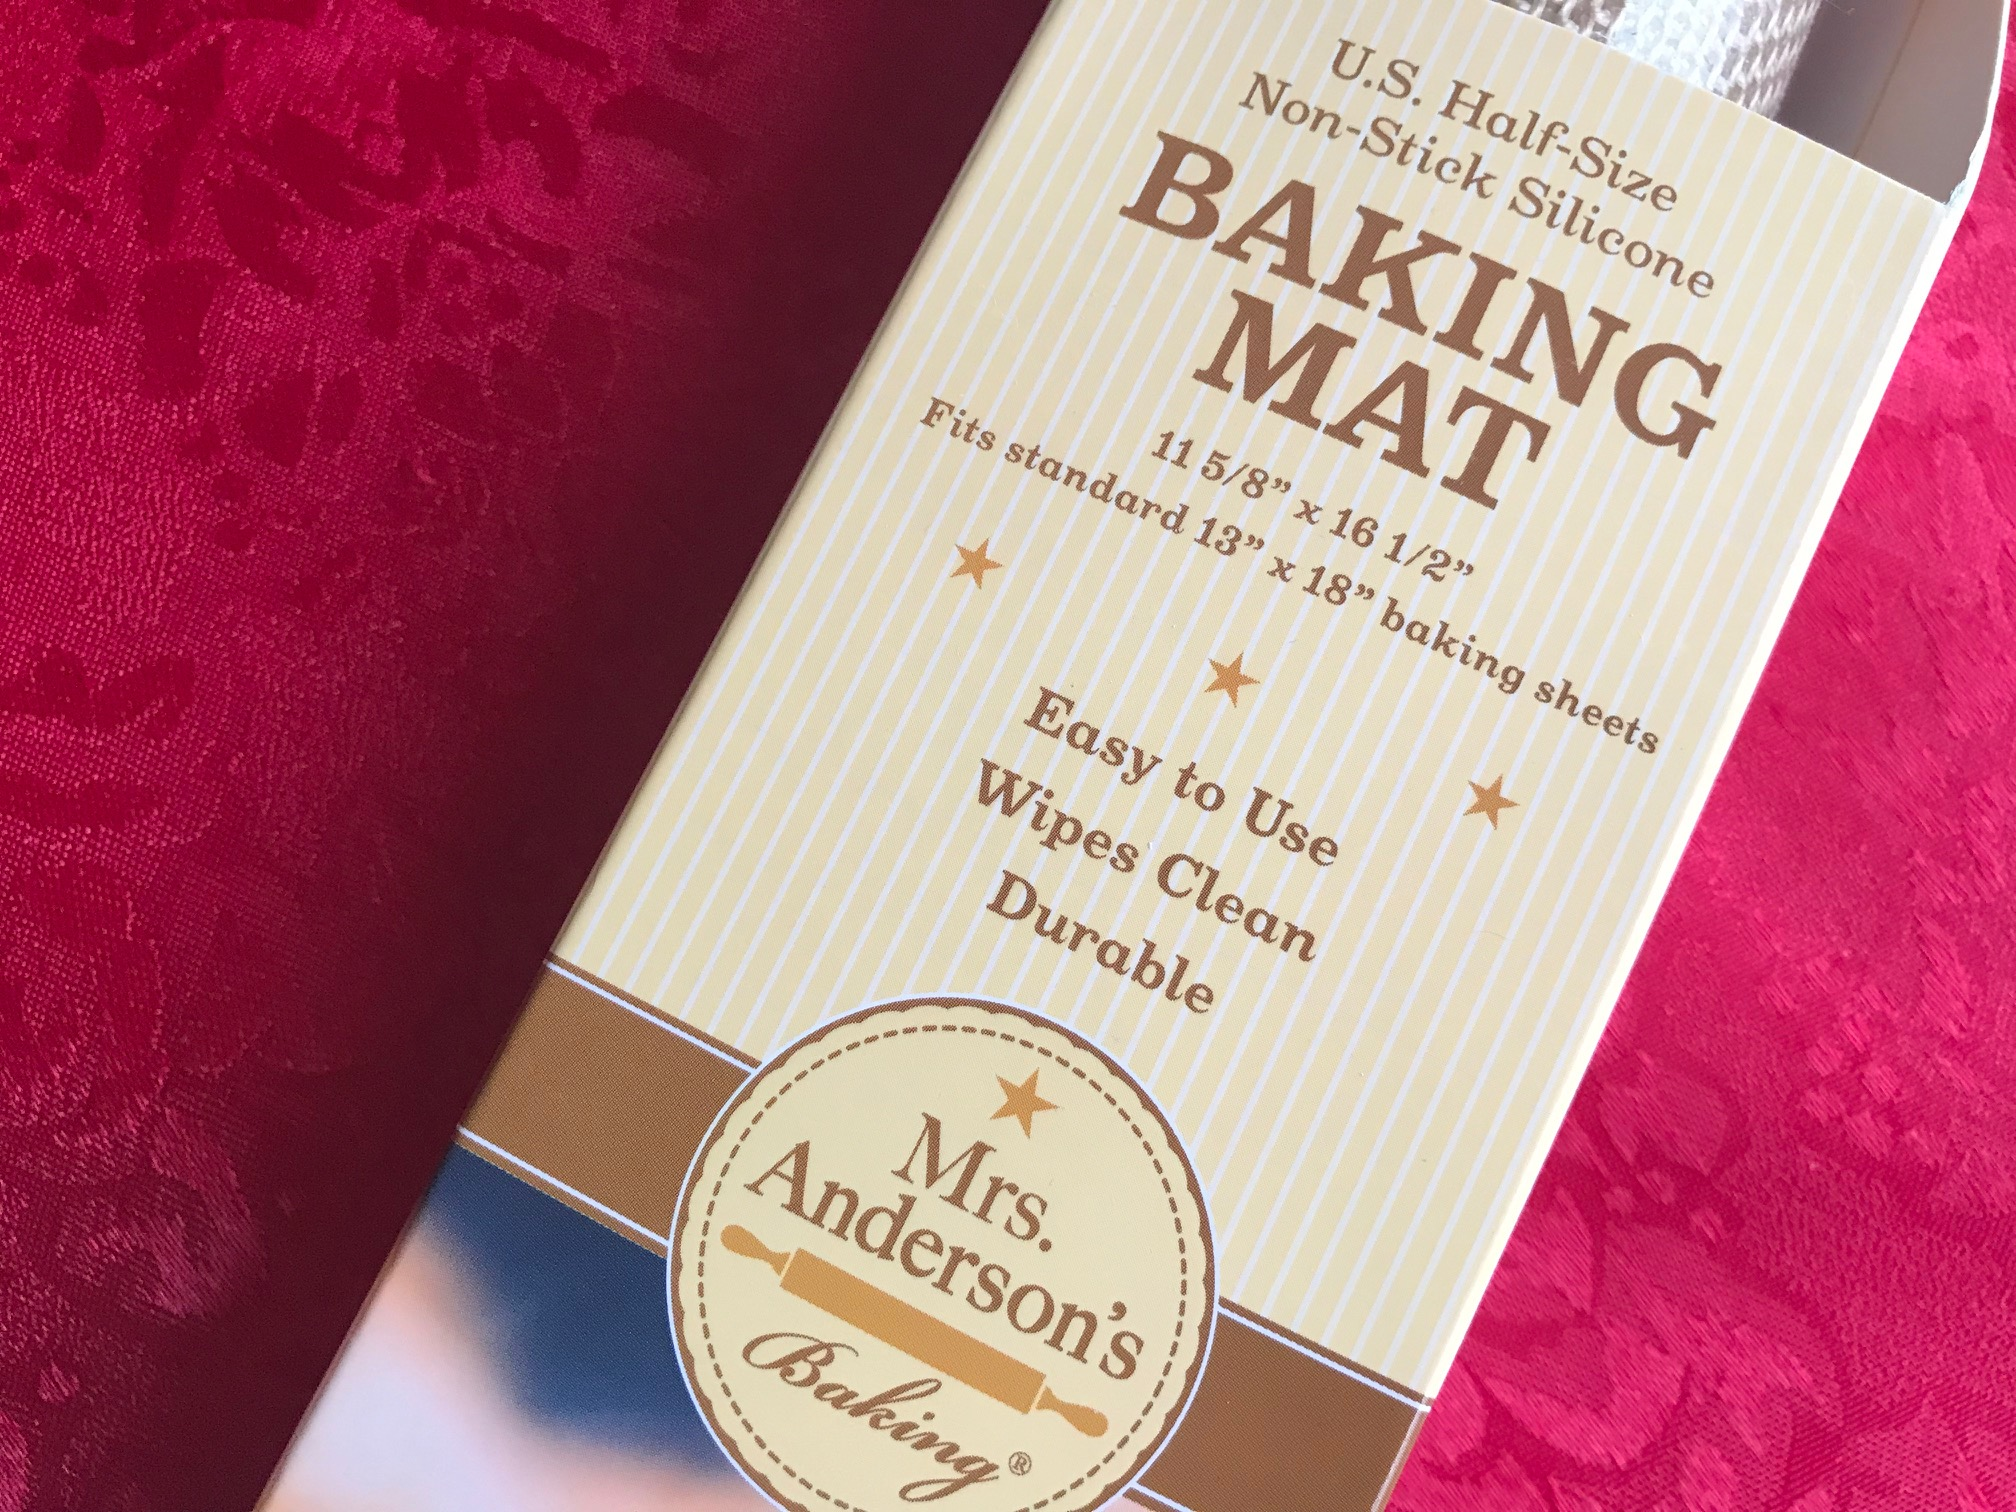 Mrs. Anderson's Non-Stick Silicone Baking Mat (2018): Positive for Trace Levels of Cadmium